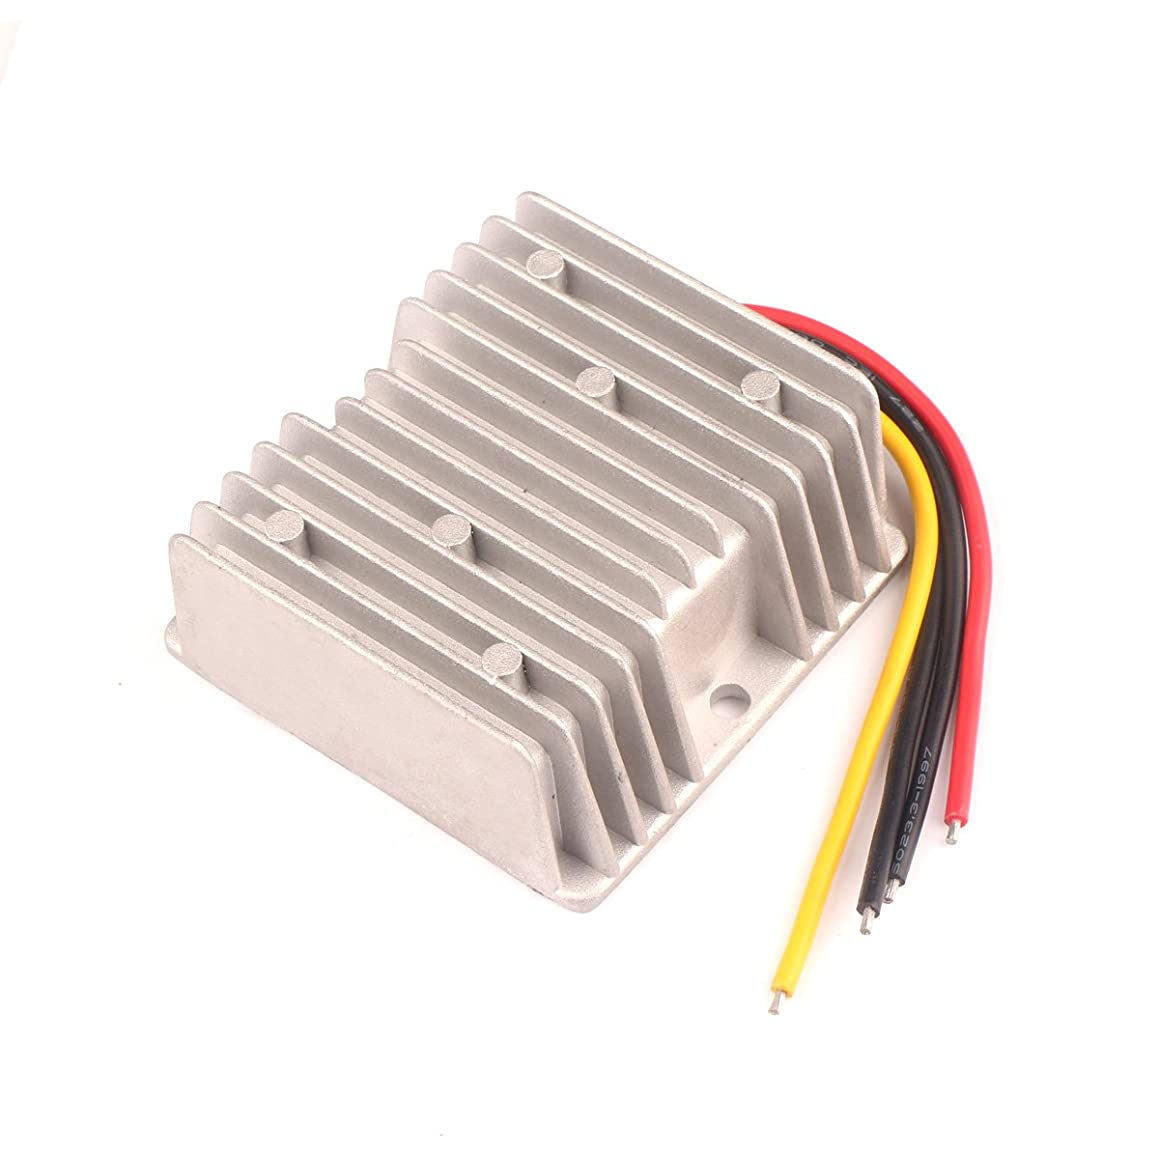 DROK DC-DC 37-60V 48V to 24V Buck Regulator 5A 120W Waterproof Step-Down Volt Converter Power Supply with Aluminum Shell for Electric Fan Audio System Automotive